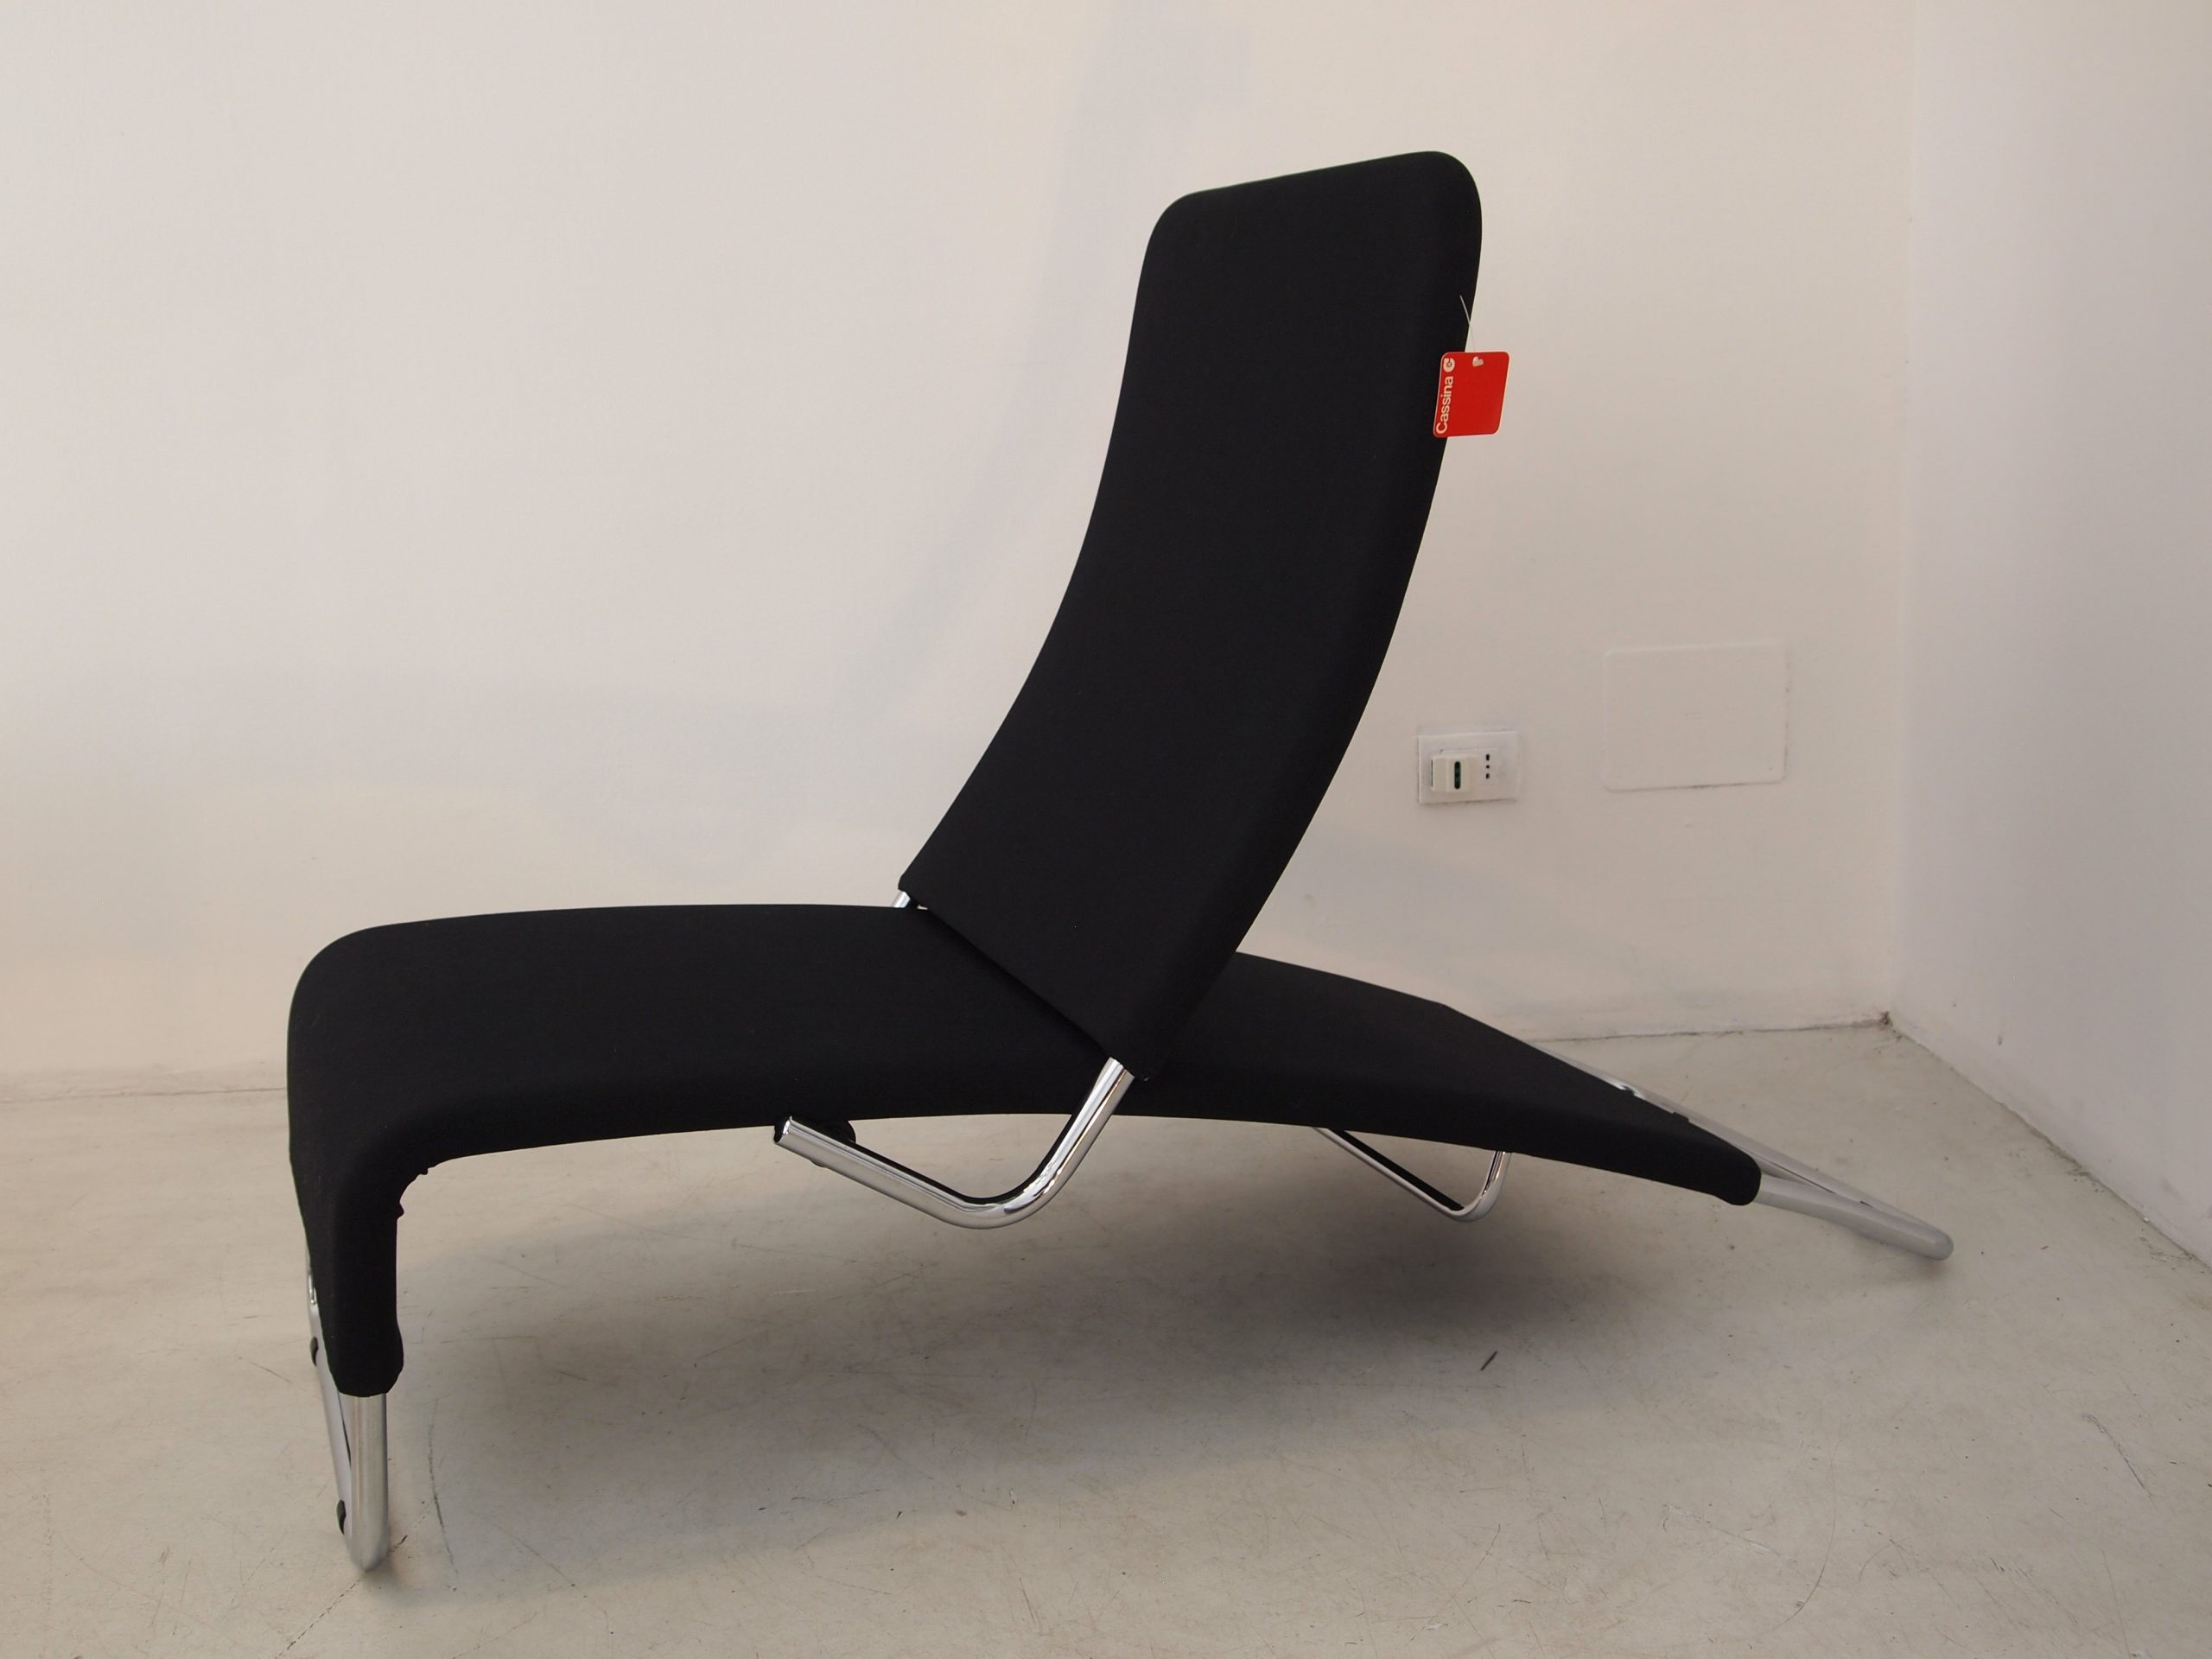 Tuoli design Antti Nurmesniemi original Cassina Made in Italy